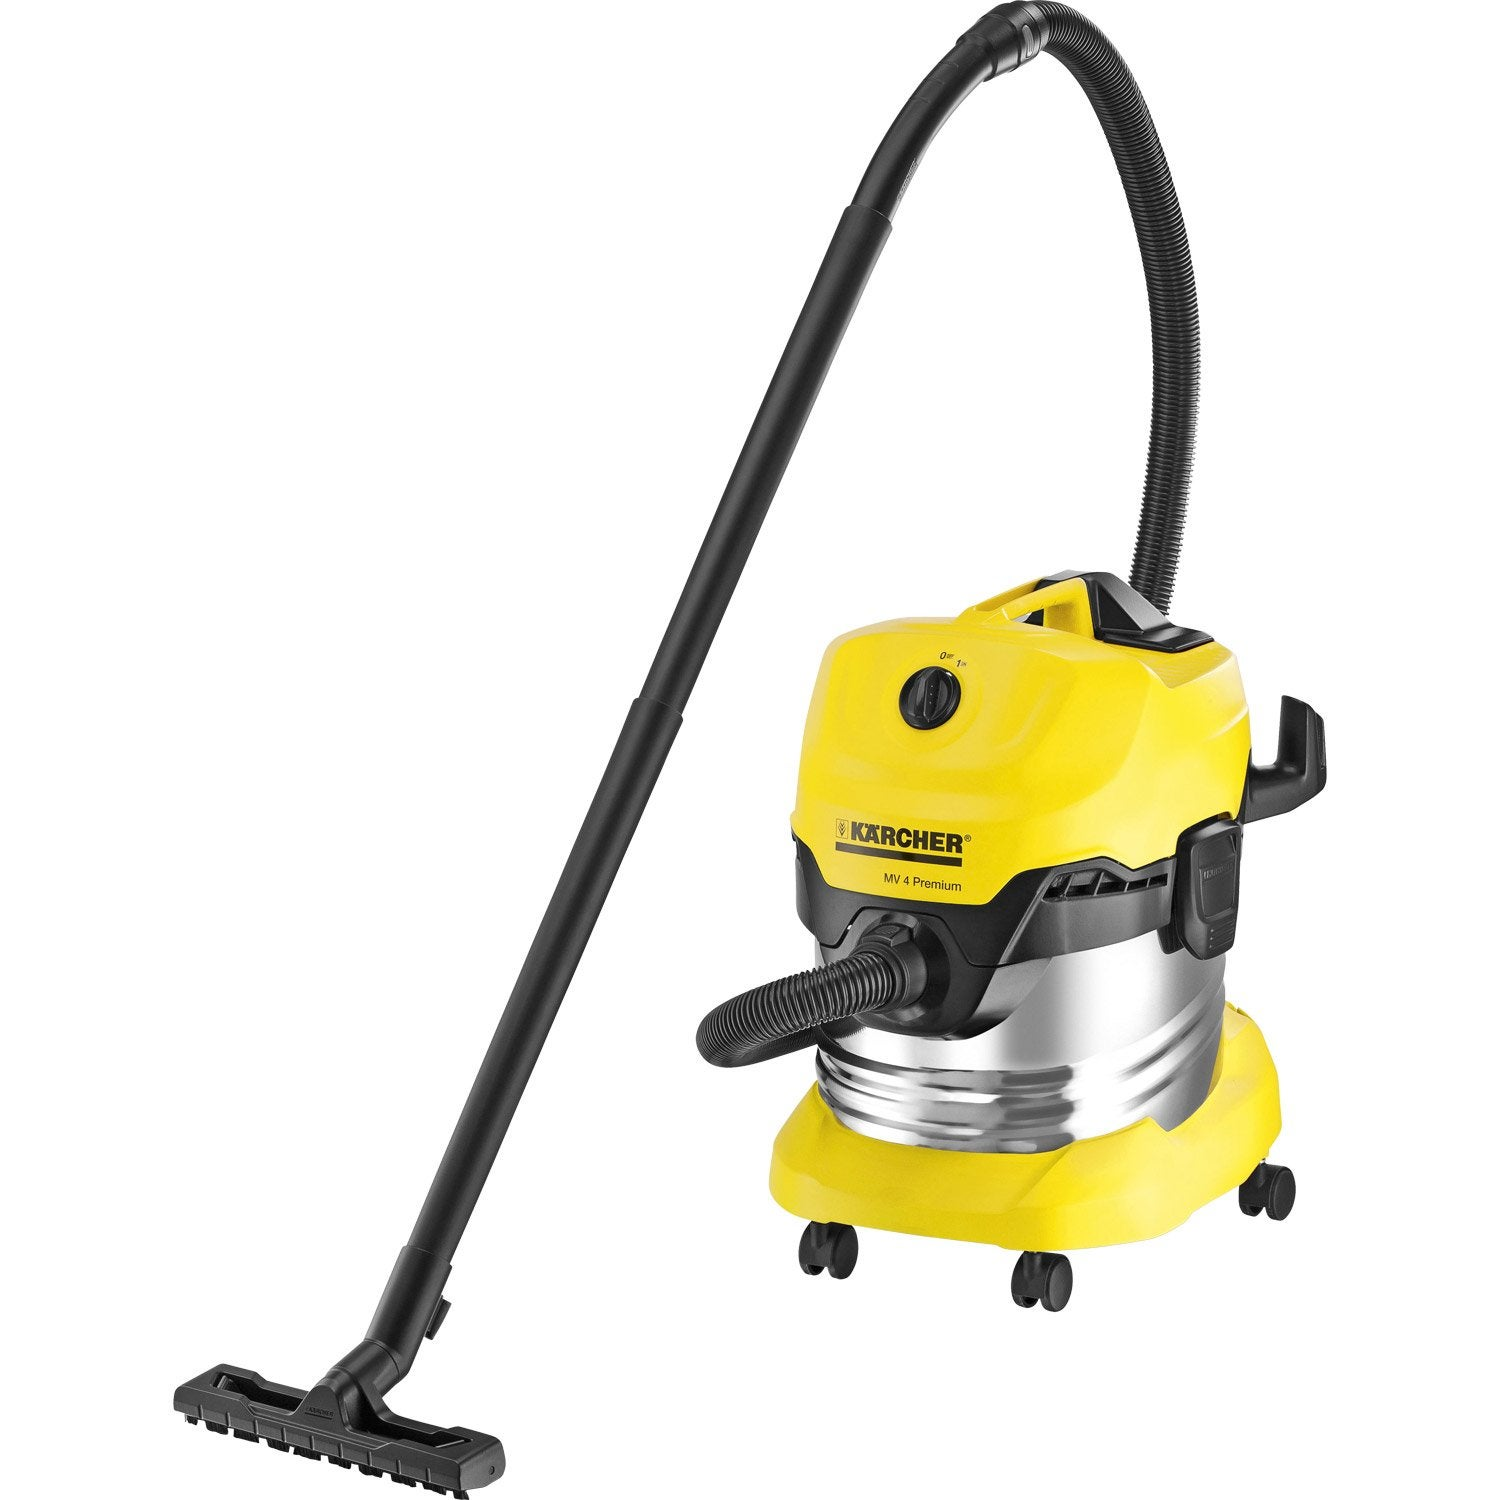 aspirateur eau poussi res et gravats karcher wd4 premium 21 kpa 20 l leroy merlin. Black Bedroom Furniture Sets. Home Design Ideas